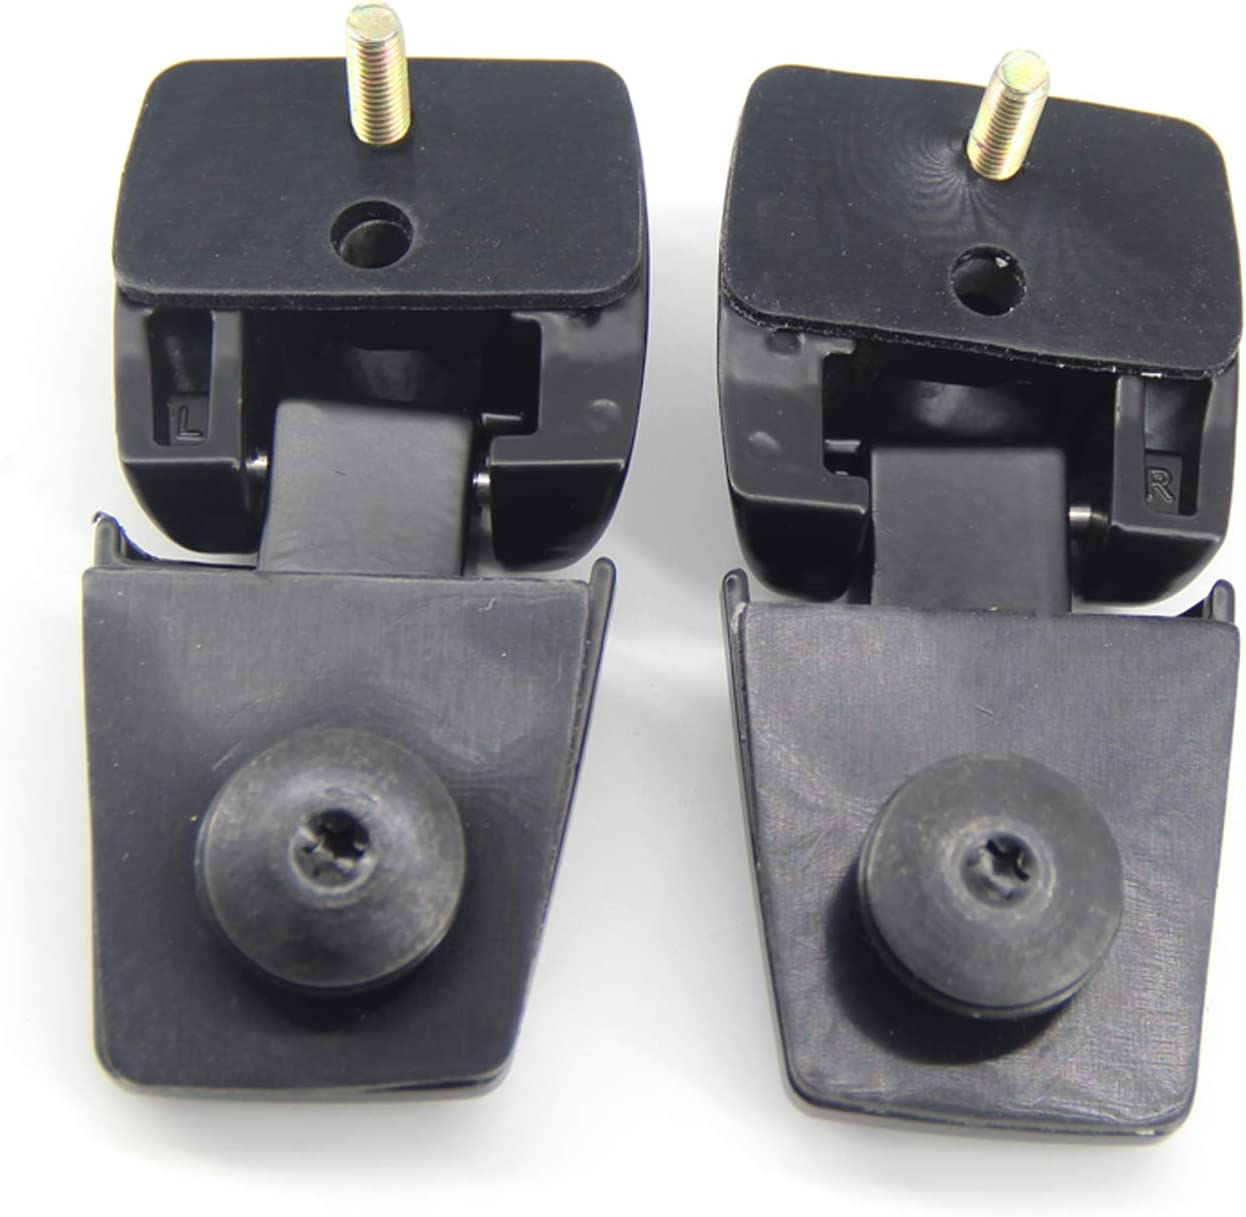 FEXON Rear Window Glass Hinges Set for Lincoln Aviator 4.6L 2003-2005 Replaces 3C5Z78420A68AA 3C5Z78420A69AA